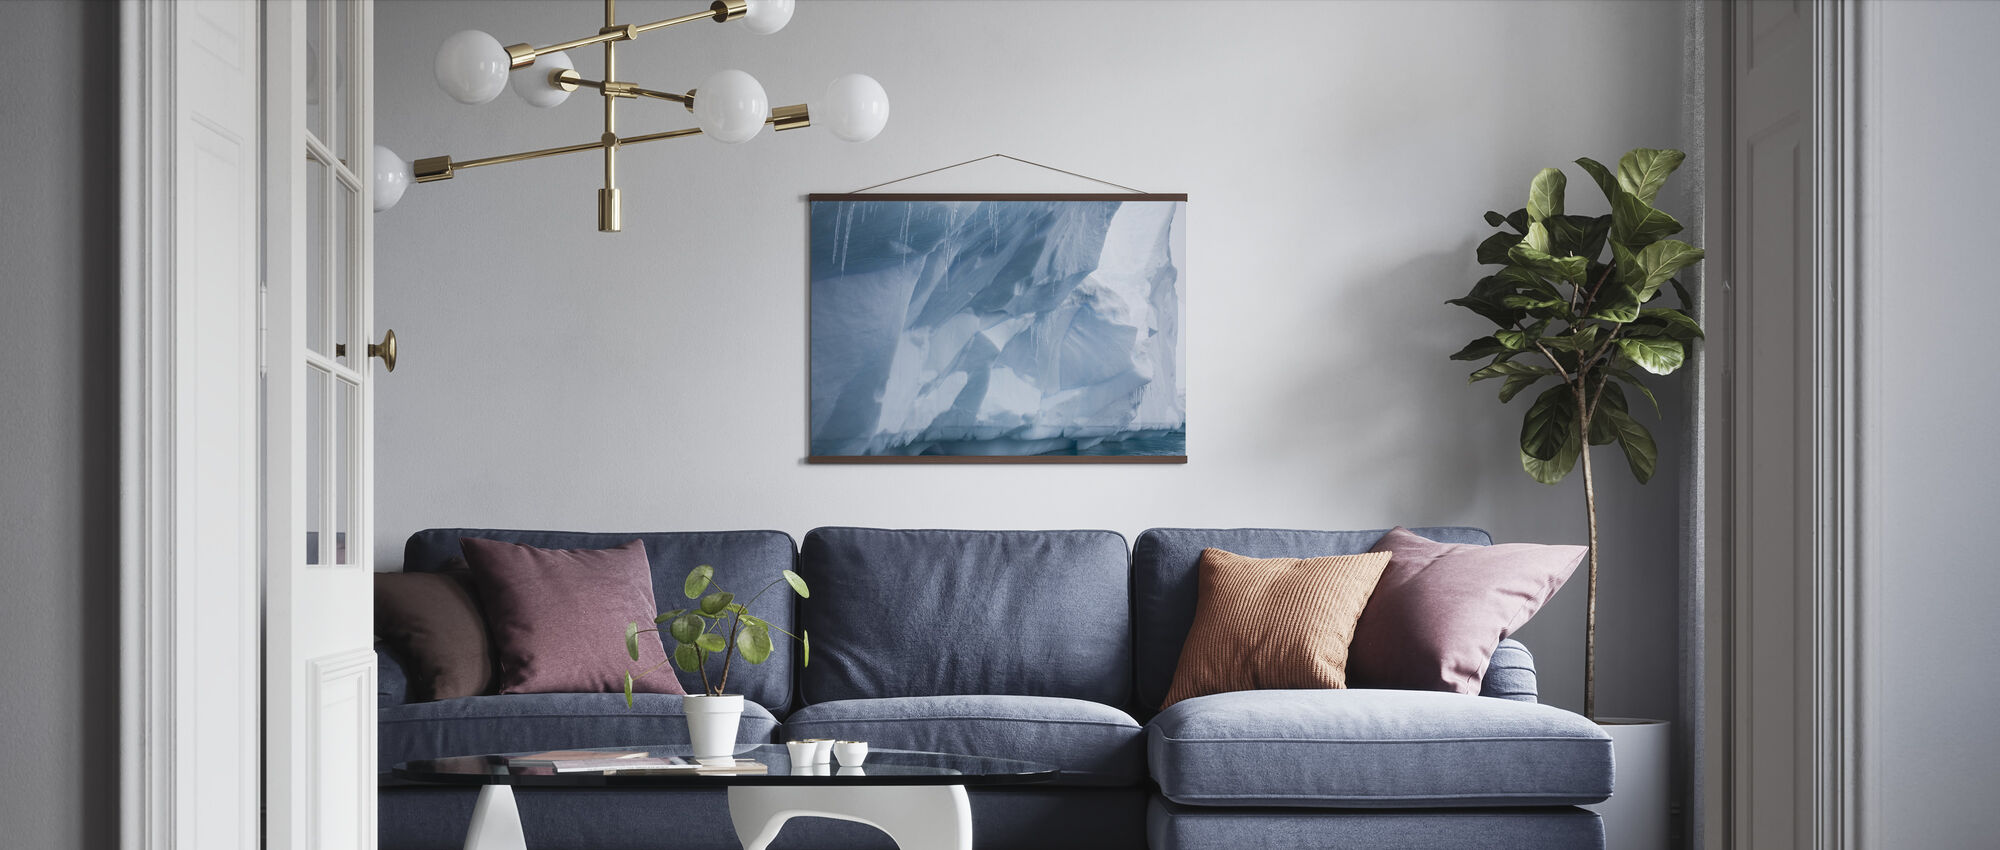 Icicle in Antarctica - Poster - Living Room